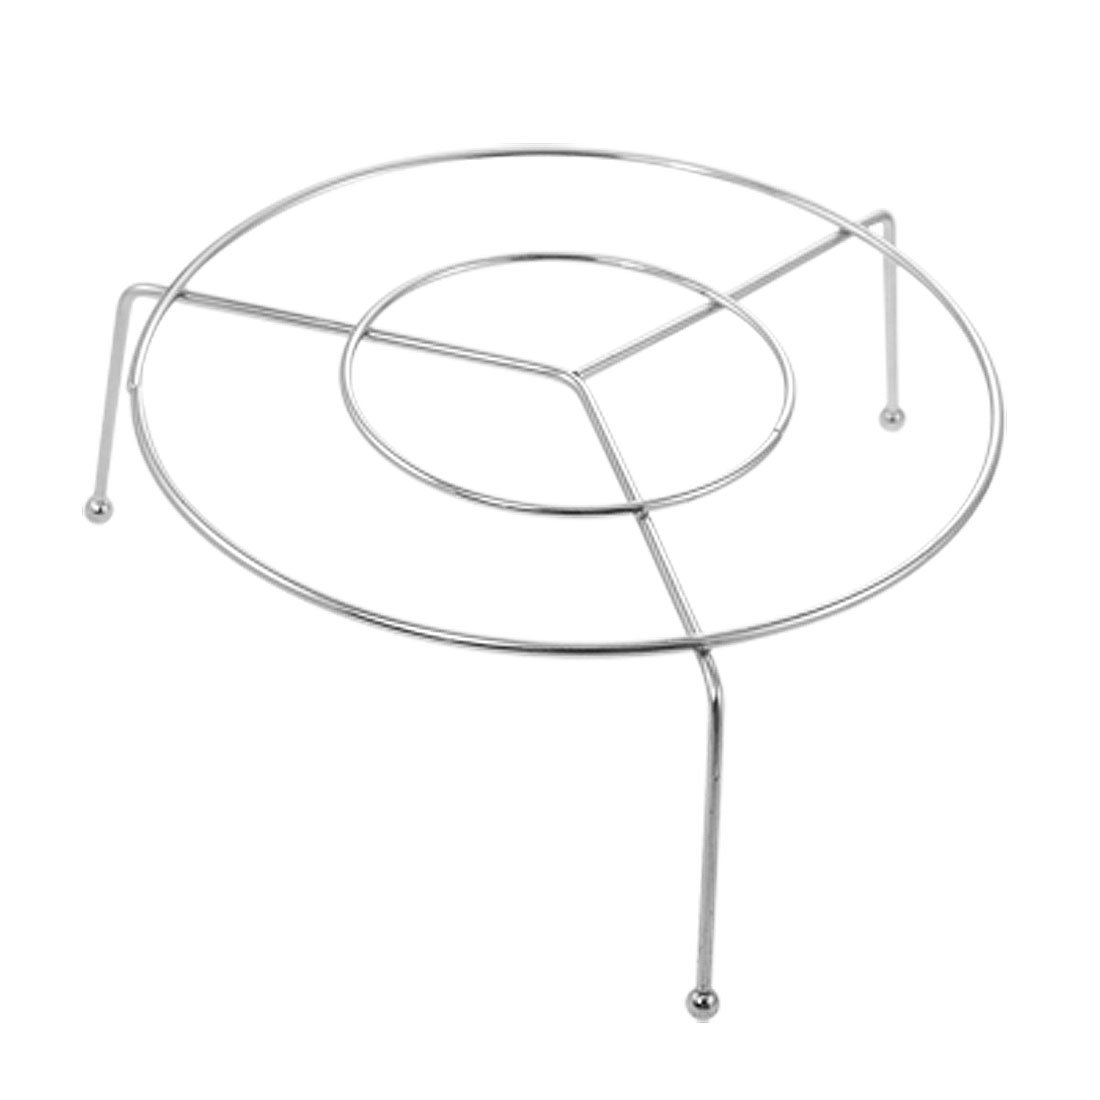 TFBC 13.5cm Stainless Steel Wire Steamer Rack Food Steaming Stand 0 8mm 304 stainless steel wire bright surface diy materialhard steel wire cold rolled